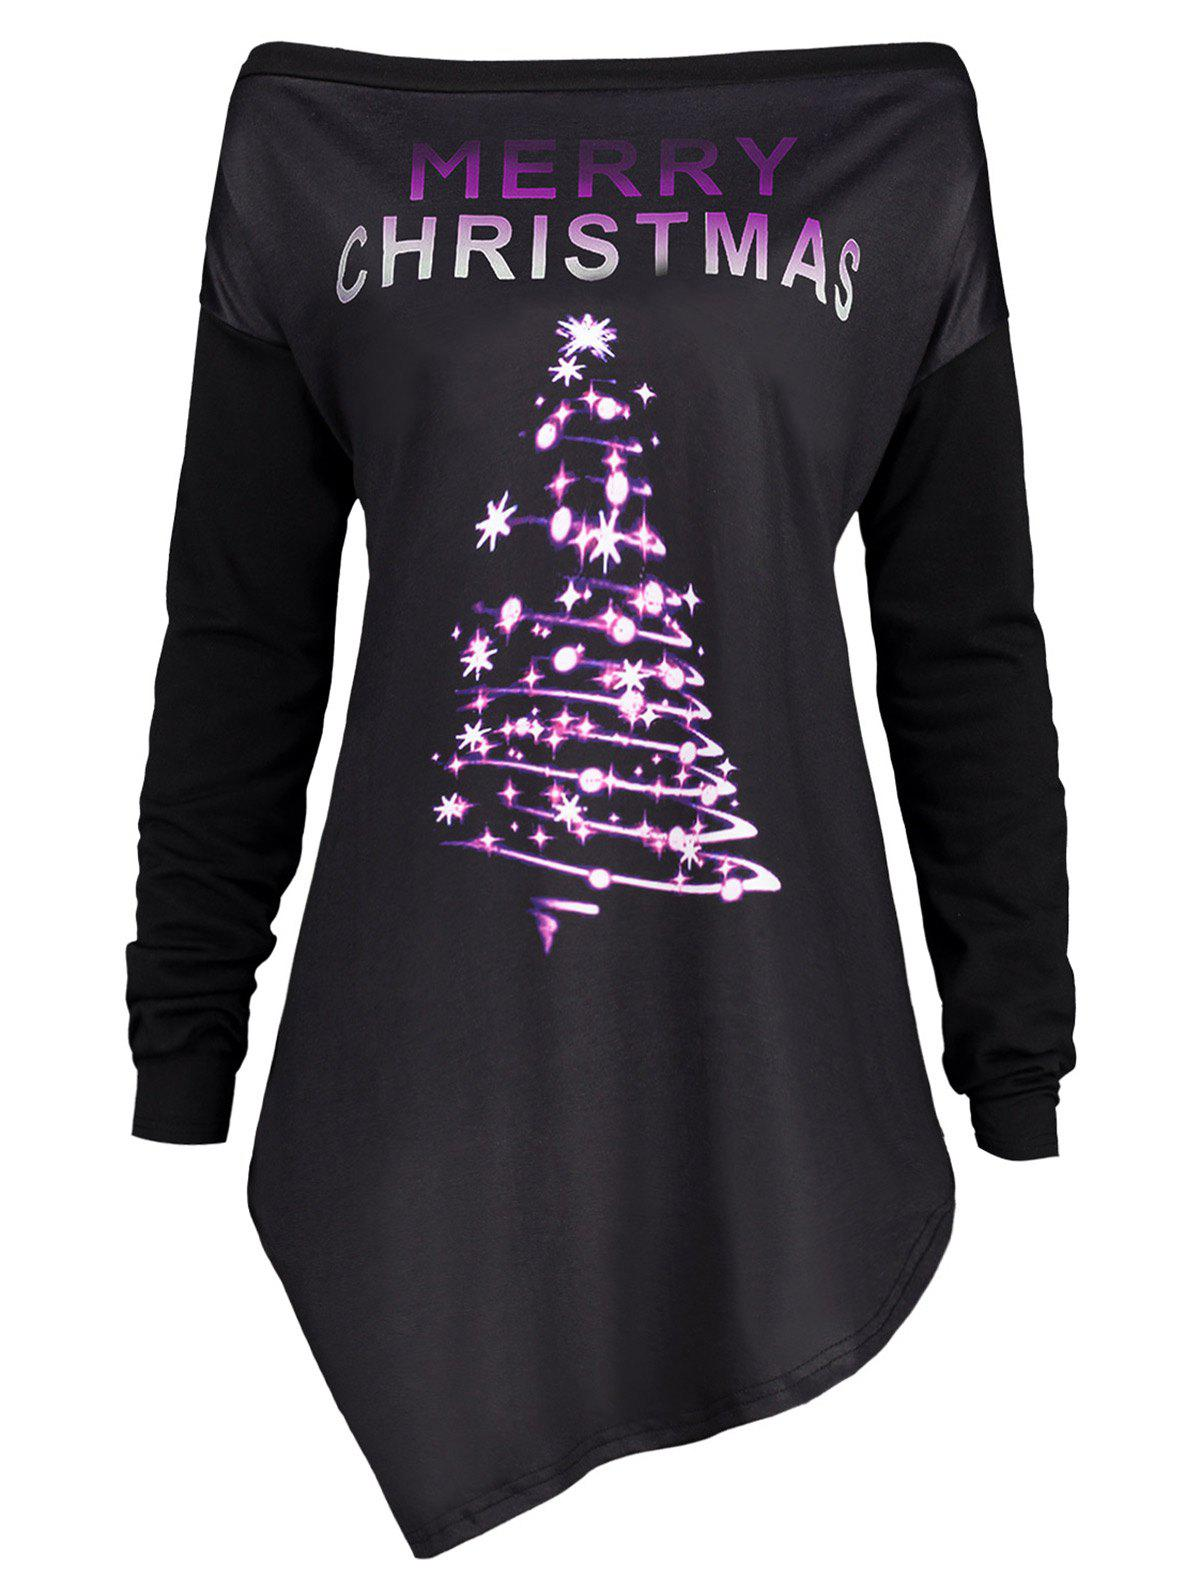 Merry Christmas Plus Size Irregular Tunic T-shirtWOMEN<br><br>Size: 2XL; Color: PURPLE; Material: Polyester,Spandex; Shirt Length: Regular; Sleeve Length: Full; Collar: Off The Shoulder; Style: Casual; Season: Fall,Spring,Winter; Pattern Type: Print; Elasticity: Micro-elastic; Weight: 0.4100kg; Package Contents: 1 x T-shirt;